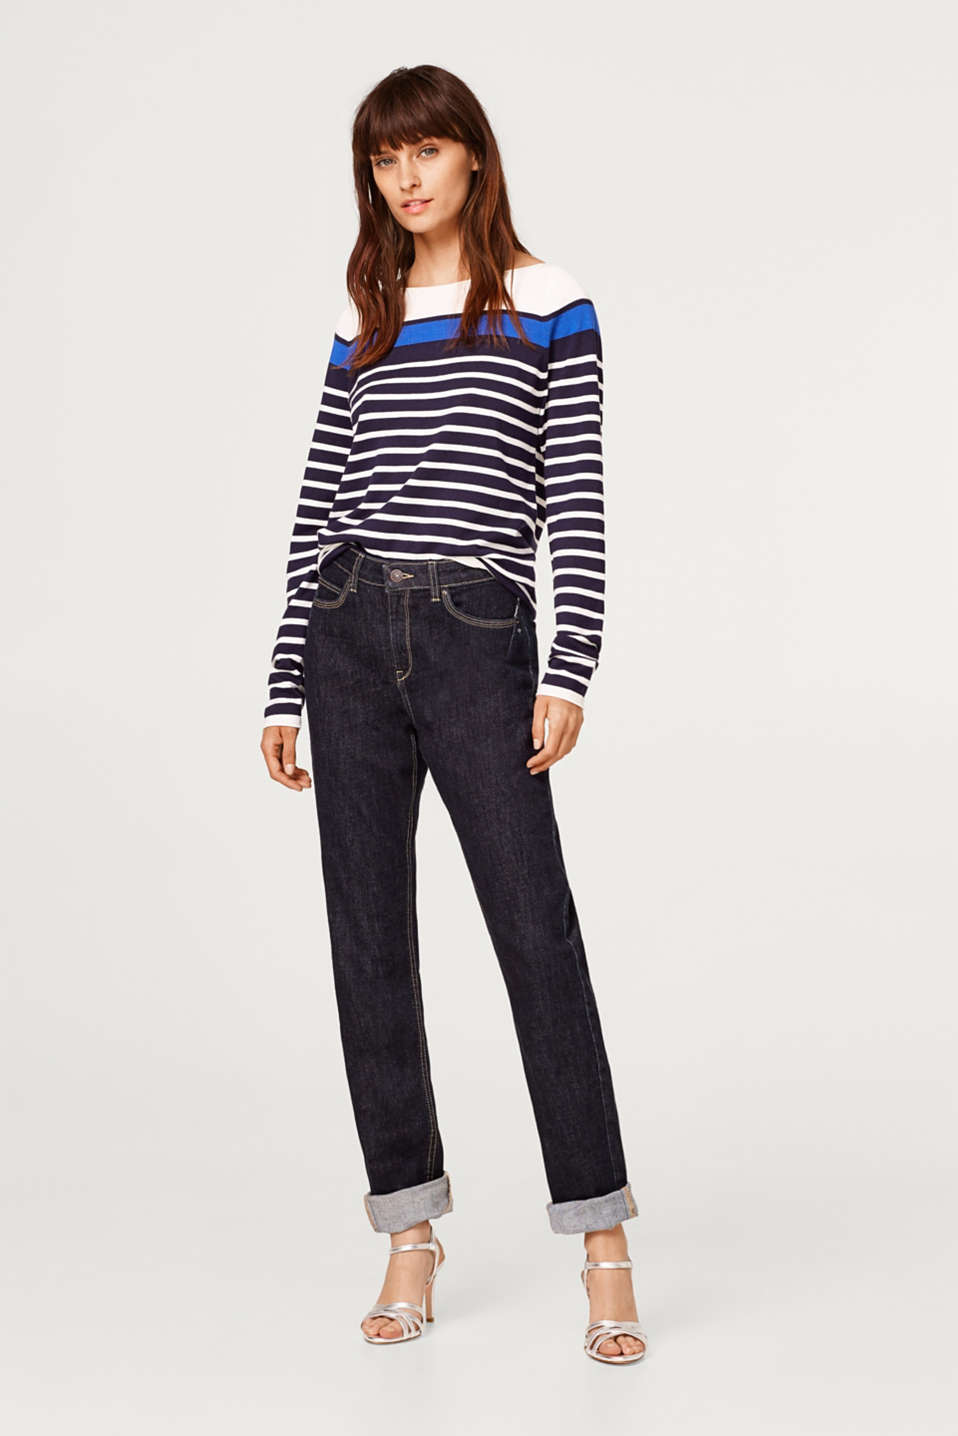 Stretchy jumper with textured stripes